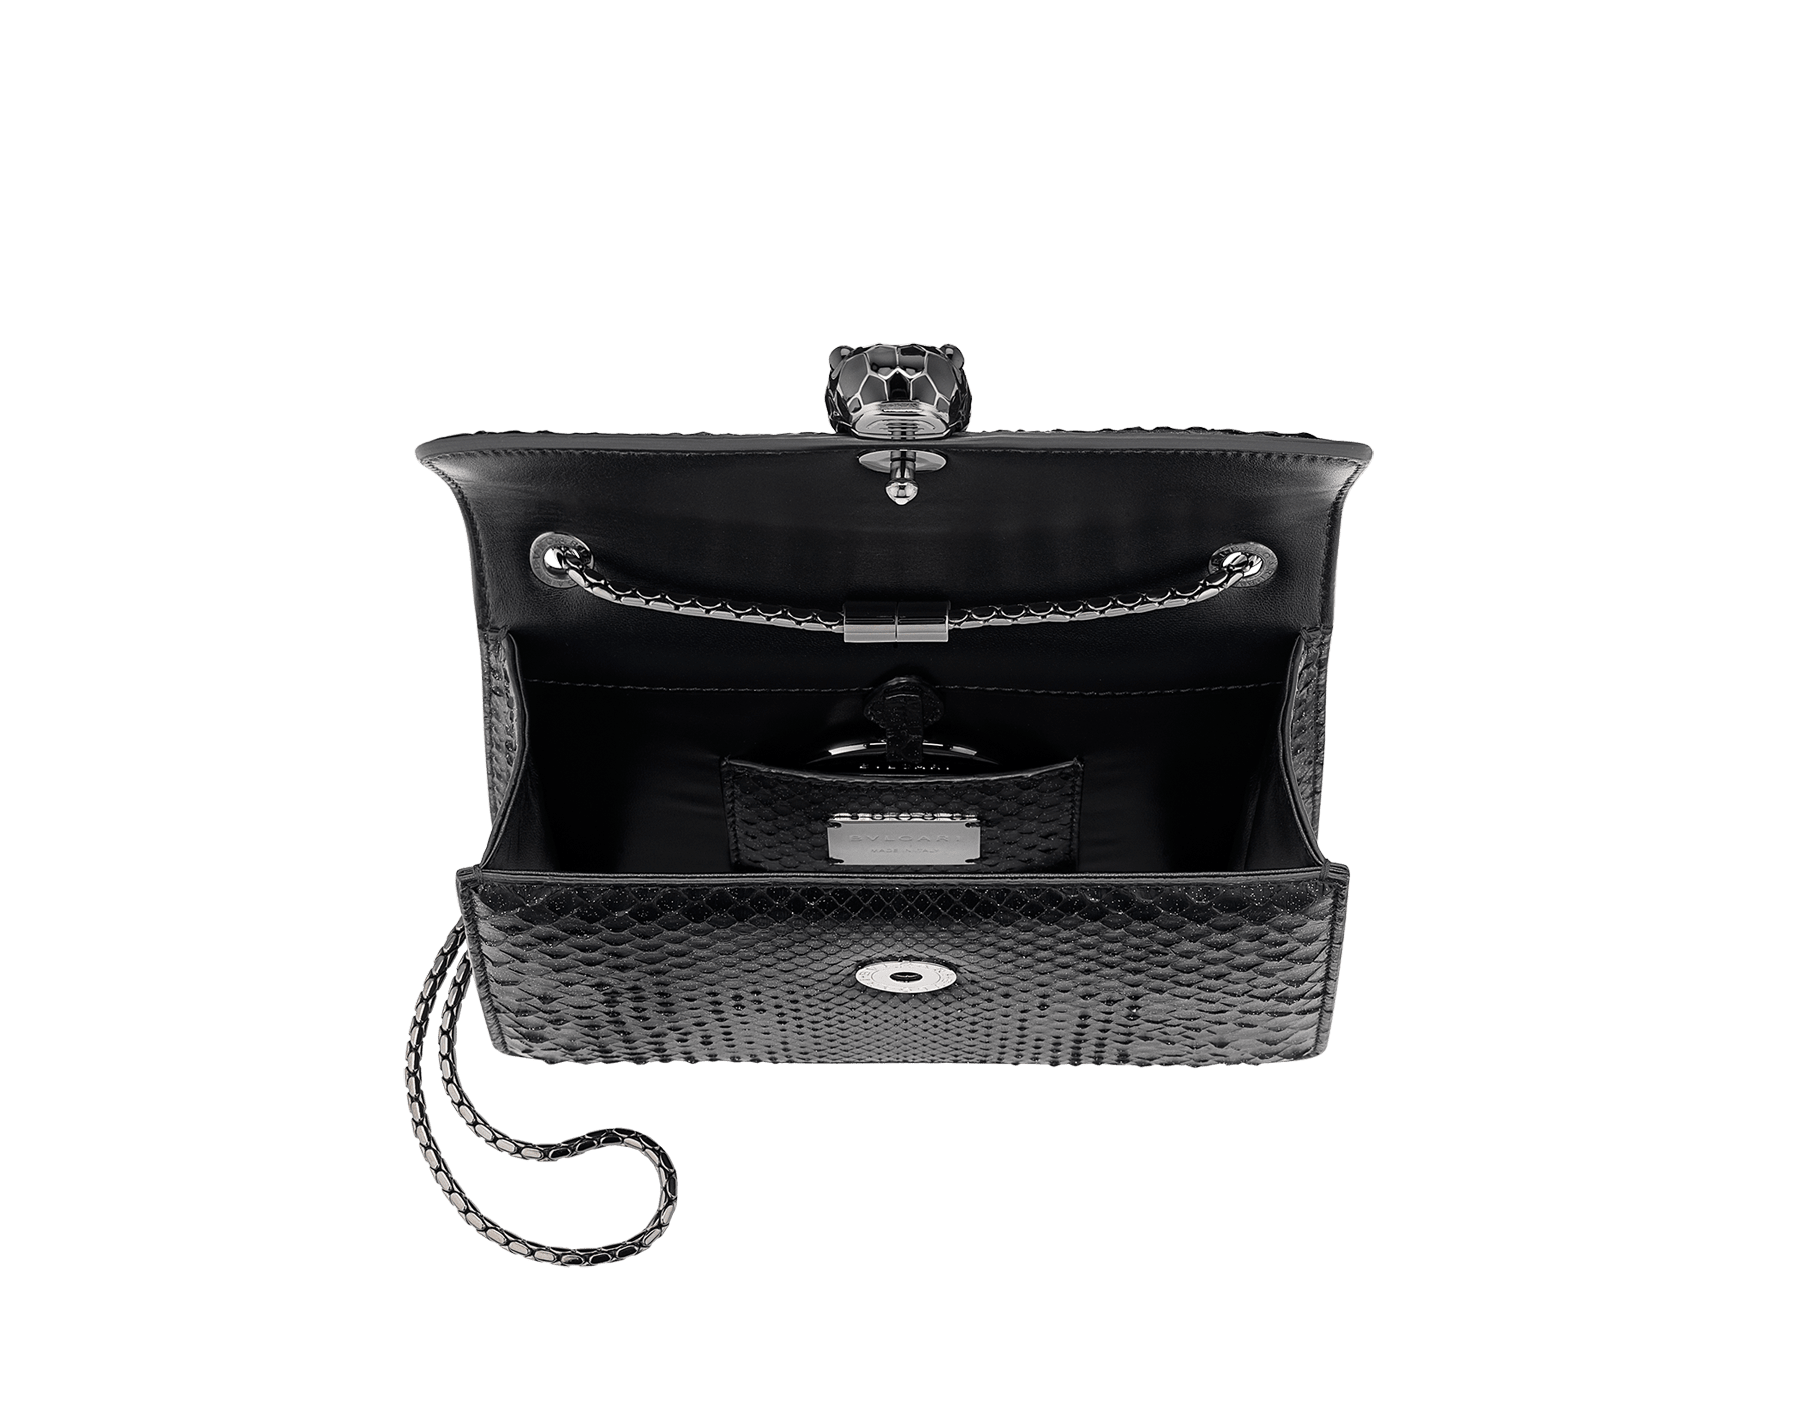 """Serpenti Forever"" crossbody bag in black Diamond Glam python skin. Iconic snake head closure in dark ruthenium plated brass enriched with black enamel and black onyx eyes. 288869 image 4"